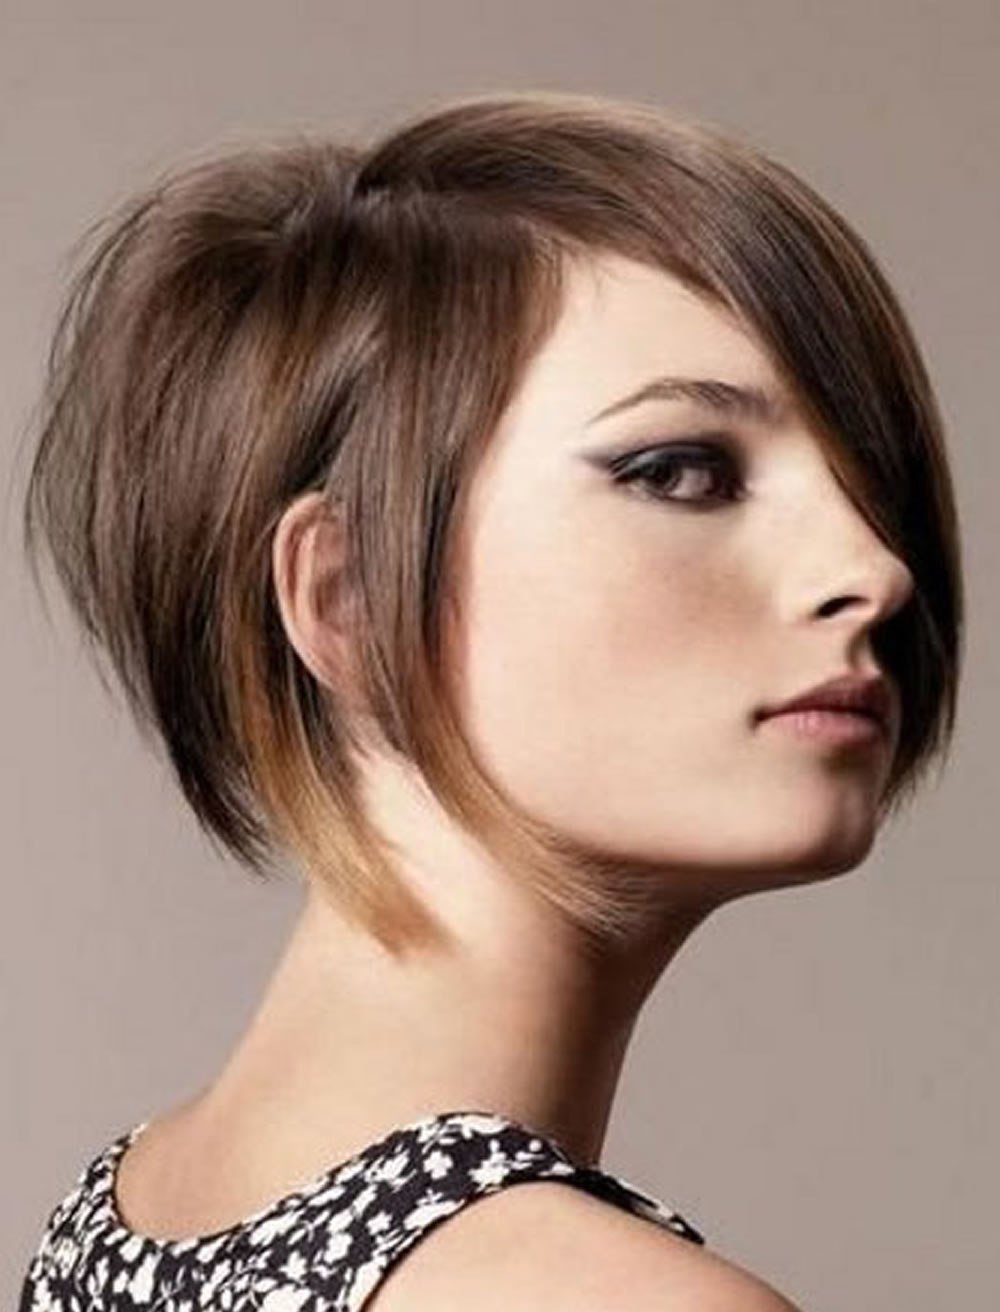 New 2018 Bob Hairstyles And Haircuts – 25 Hottest Bob Cut Ideas With Pictures Original 1024 x 768